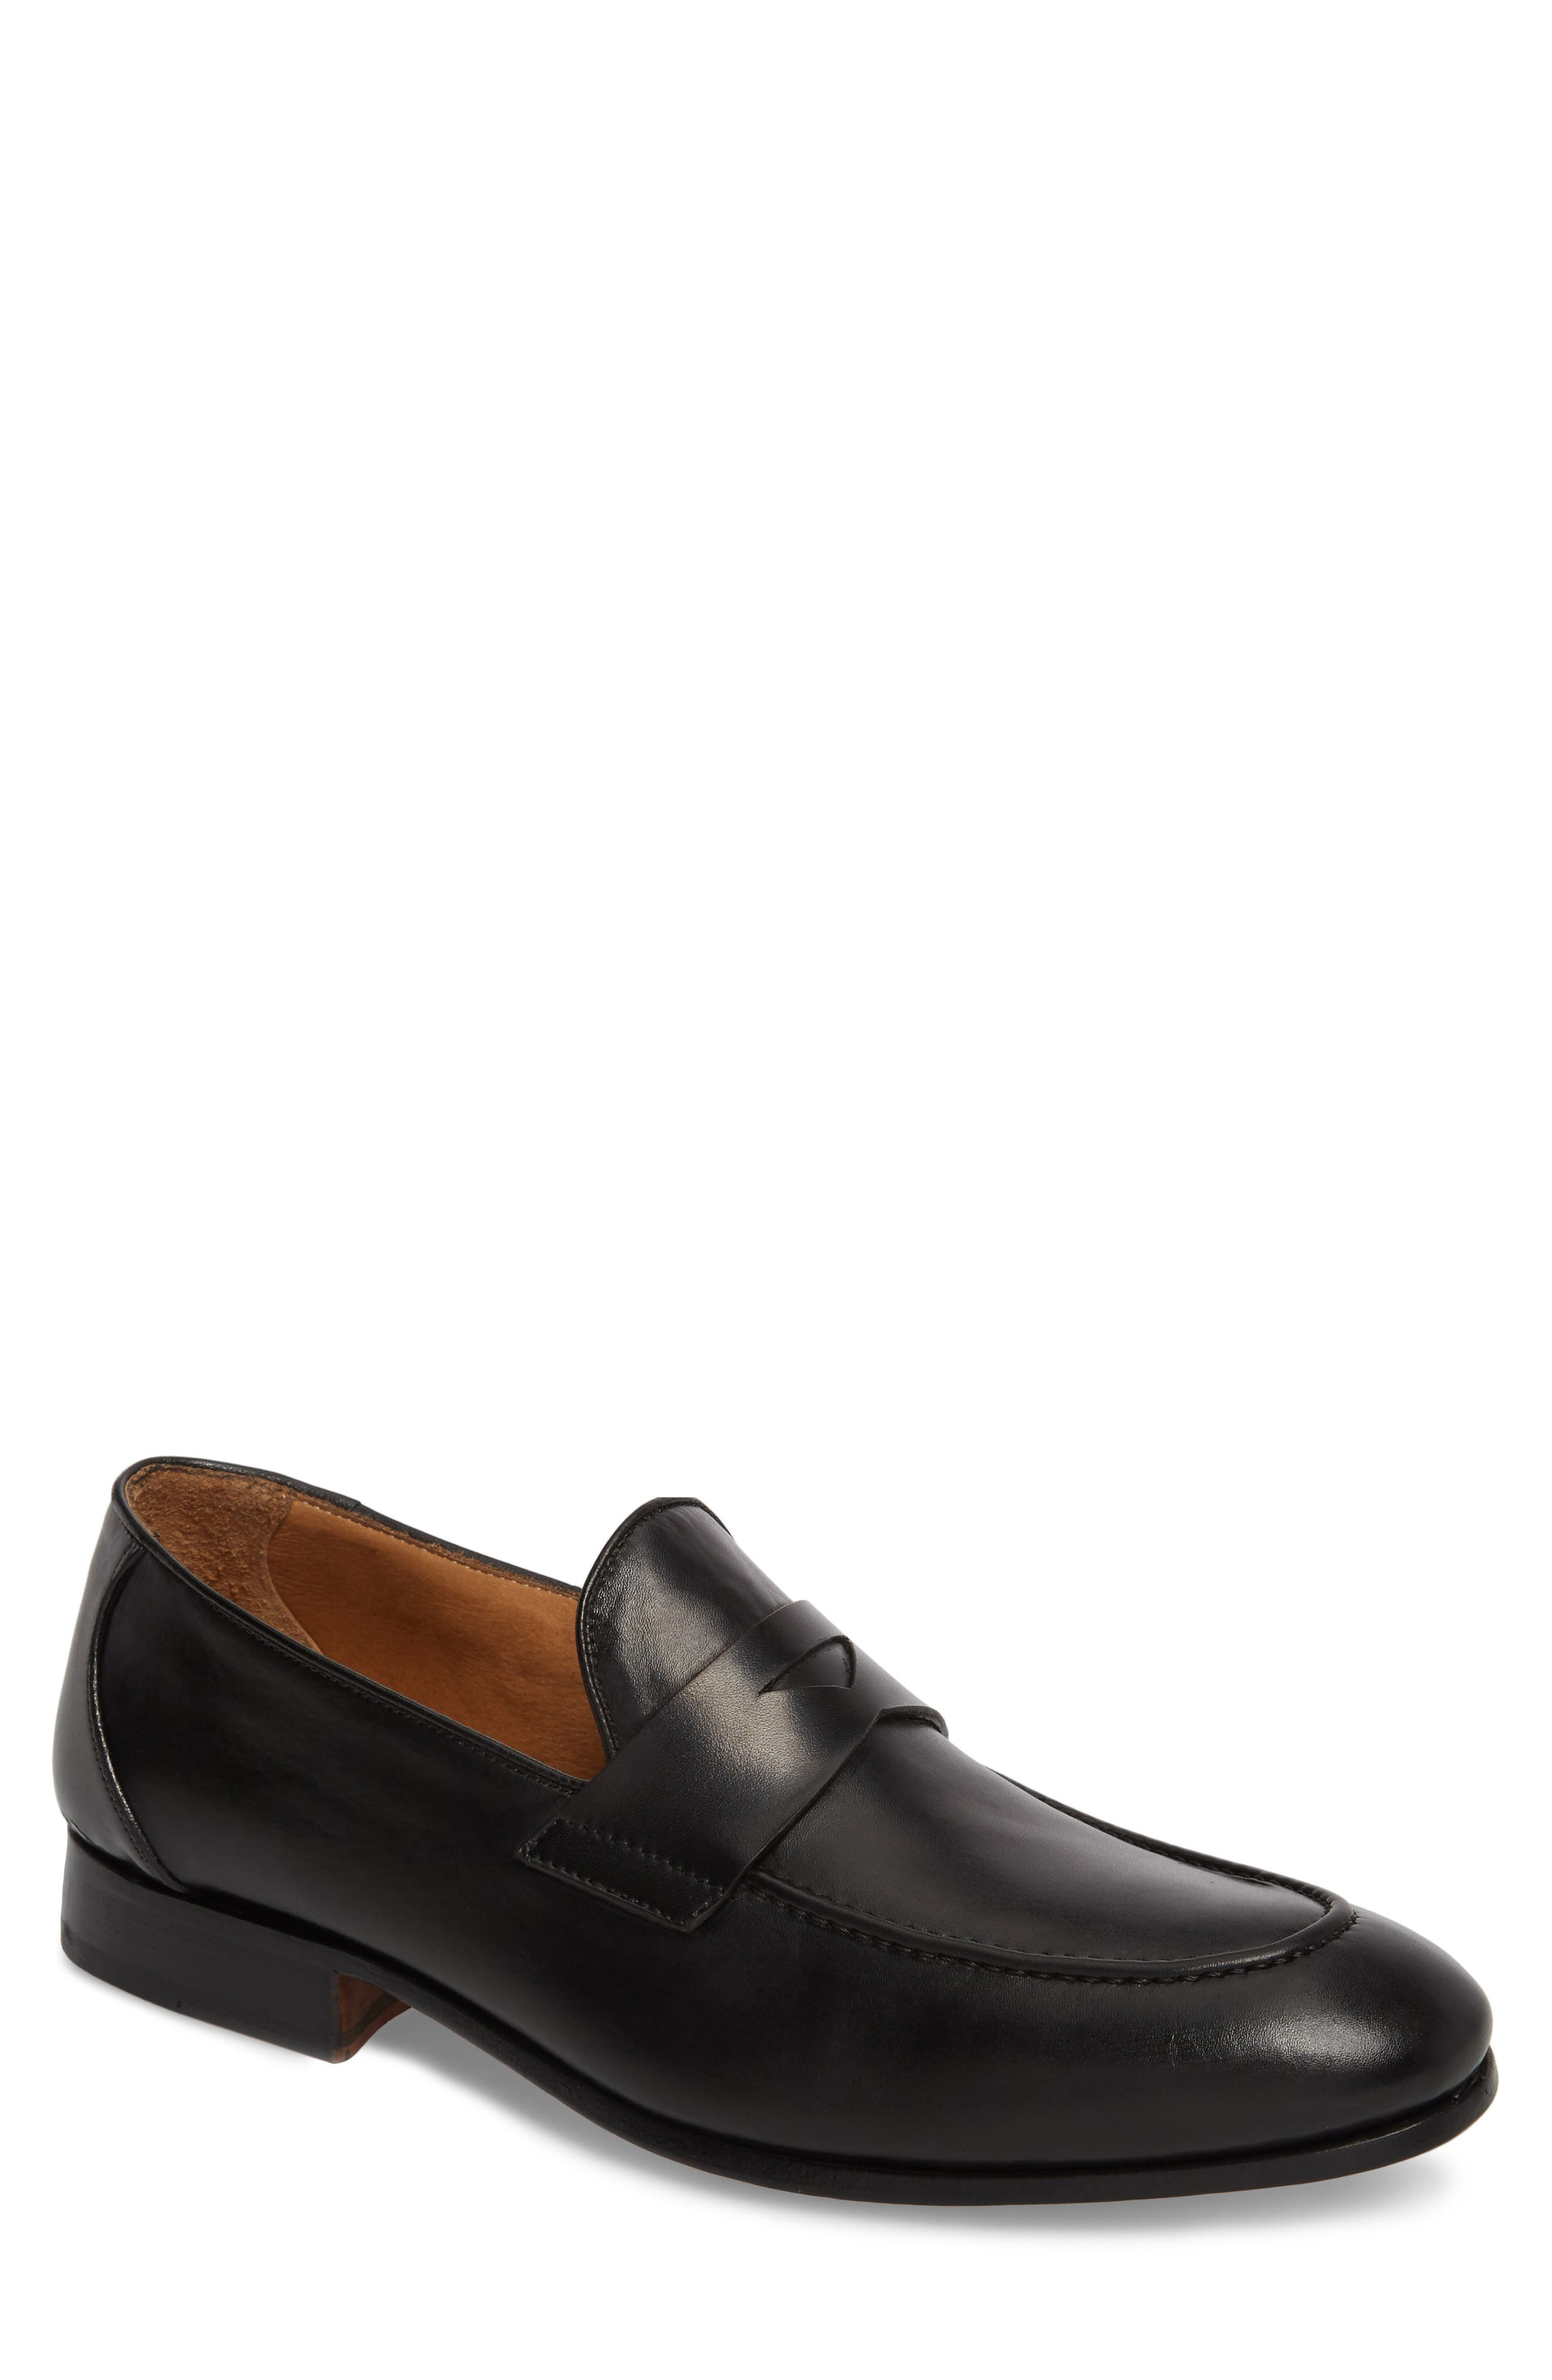 Alejo Apron Toe Penny Loafer,                             Main thumbnail 1, color,                             BLACK LEATHER